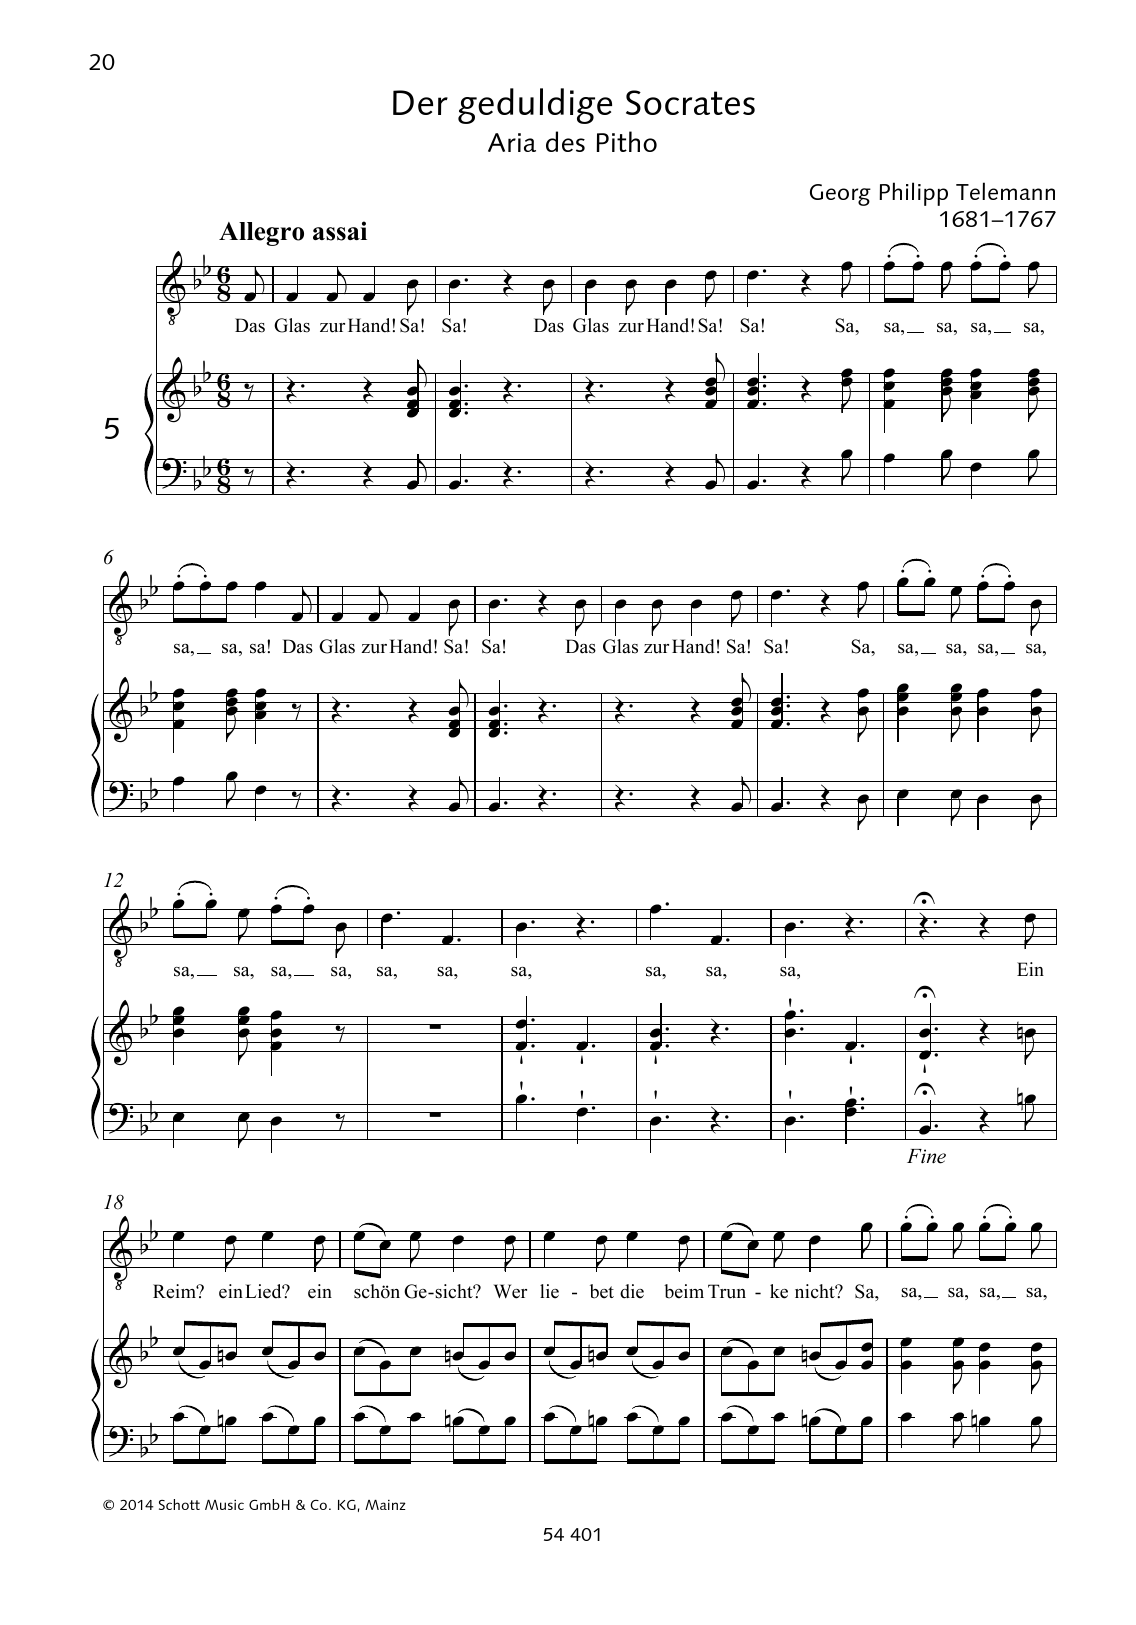 Georg Philipp Telemann Das Glas zur Hand sheet music preview music notes and score for Piano & Vocal including 2 page(s)